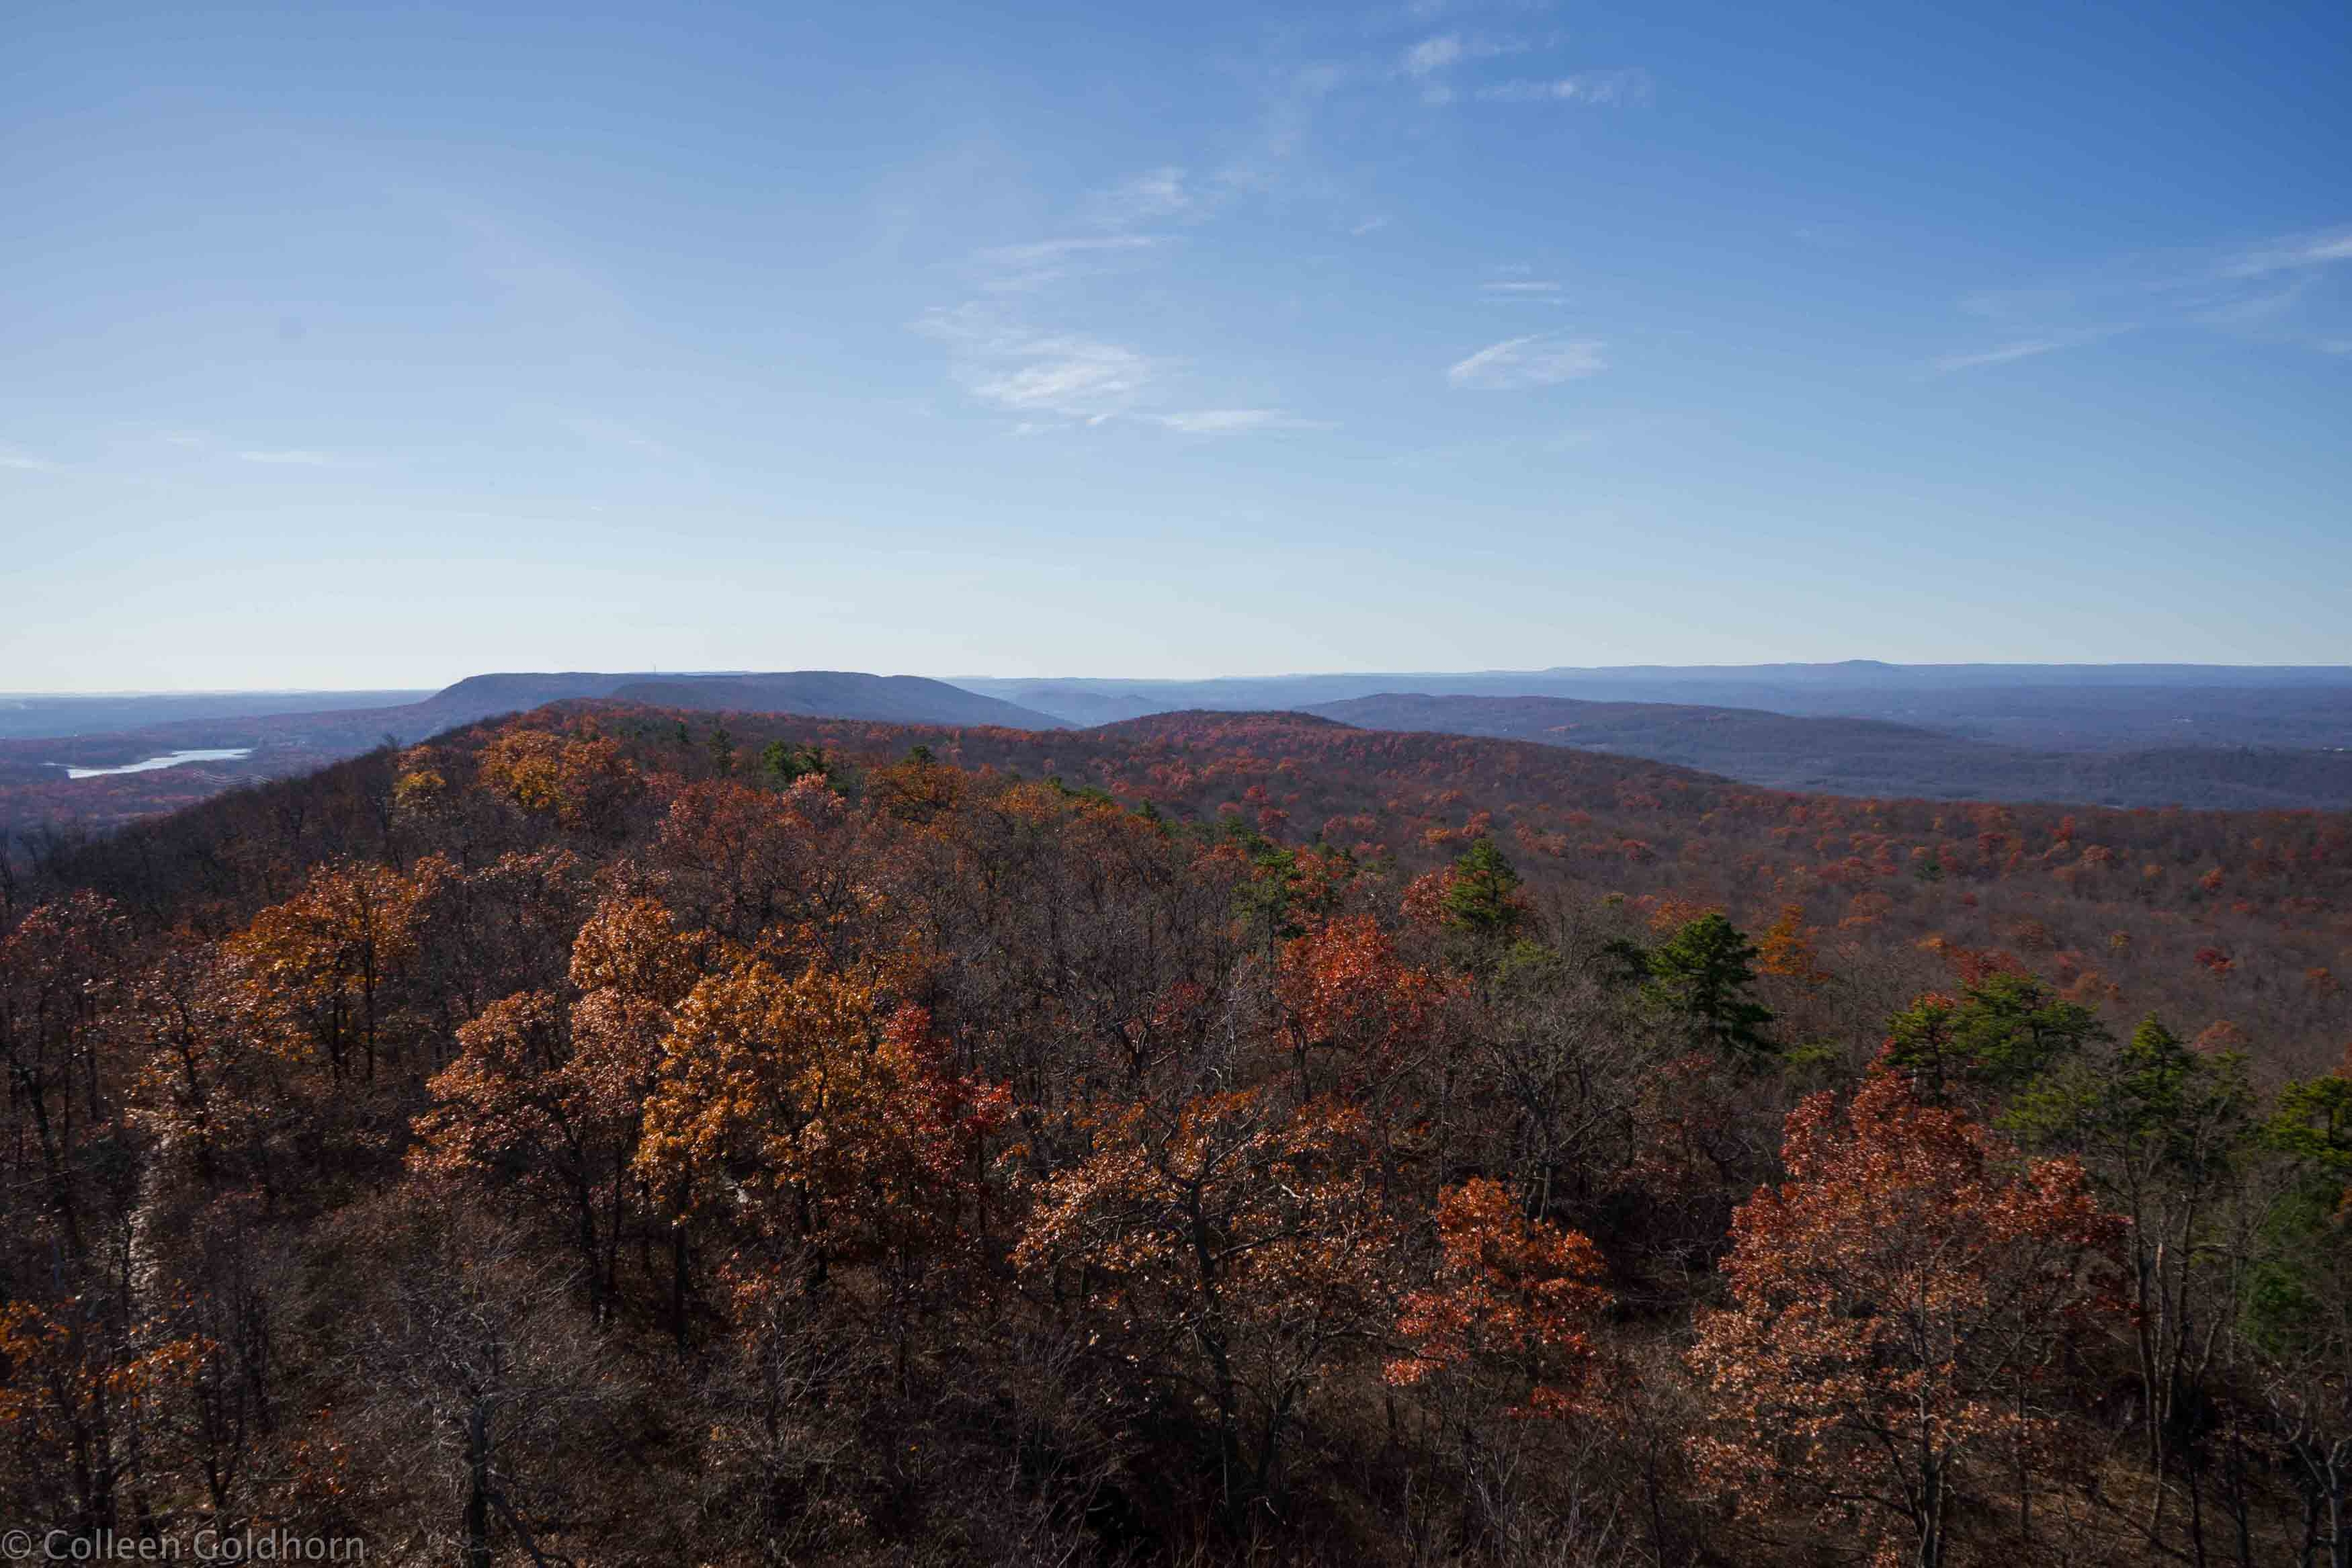 New Jersey: Must-See Day Hikes on the Appalachian Trail - The Trek on